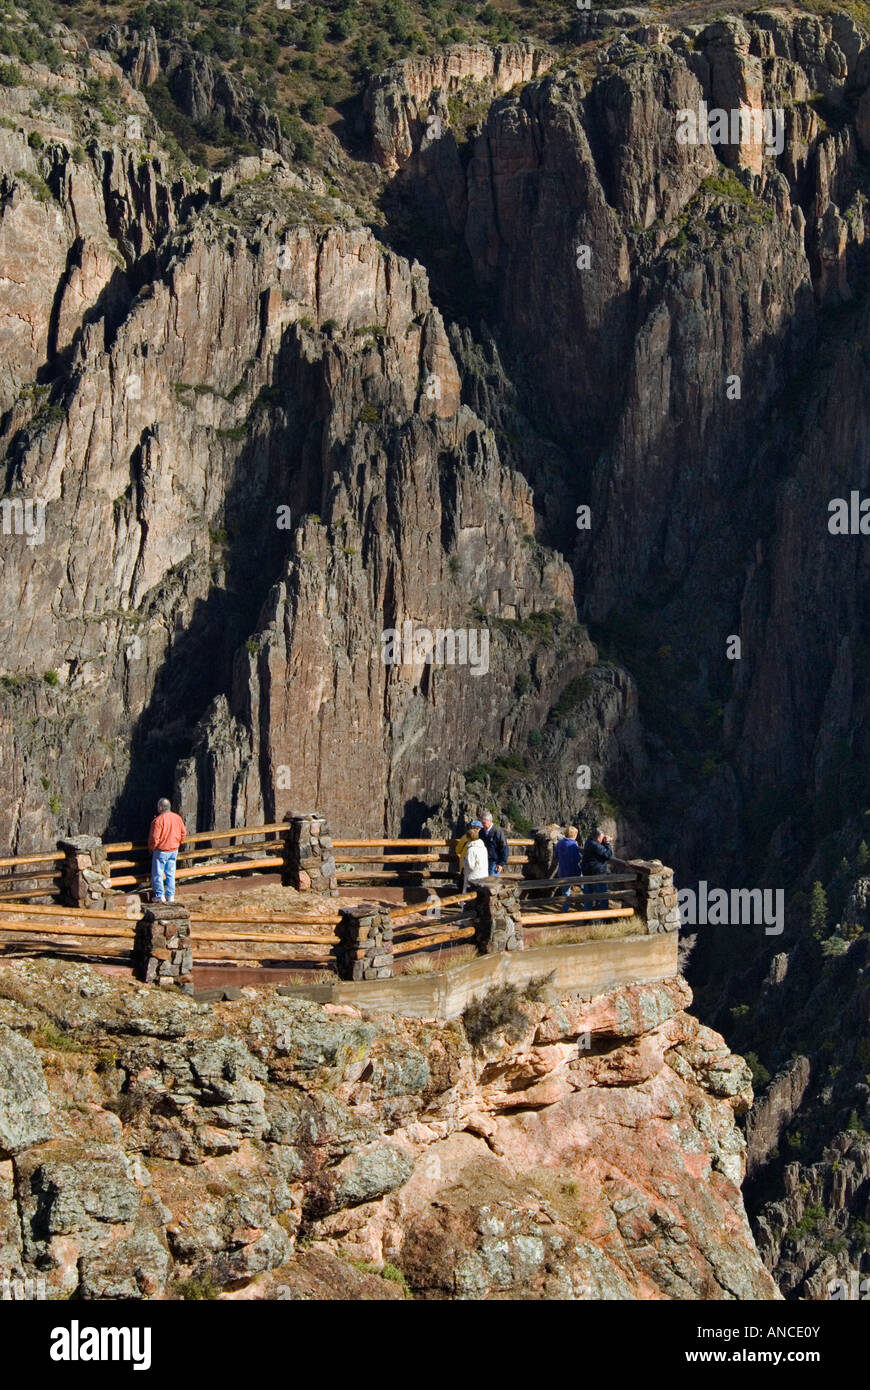 Tourists at Scenic Overlook at Visitor Center Black Canyon of the Gunnison National Park Near Montrose Colorado Stock Photo